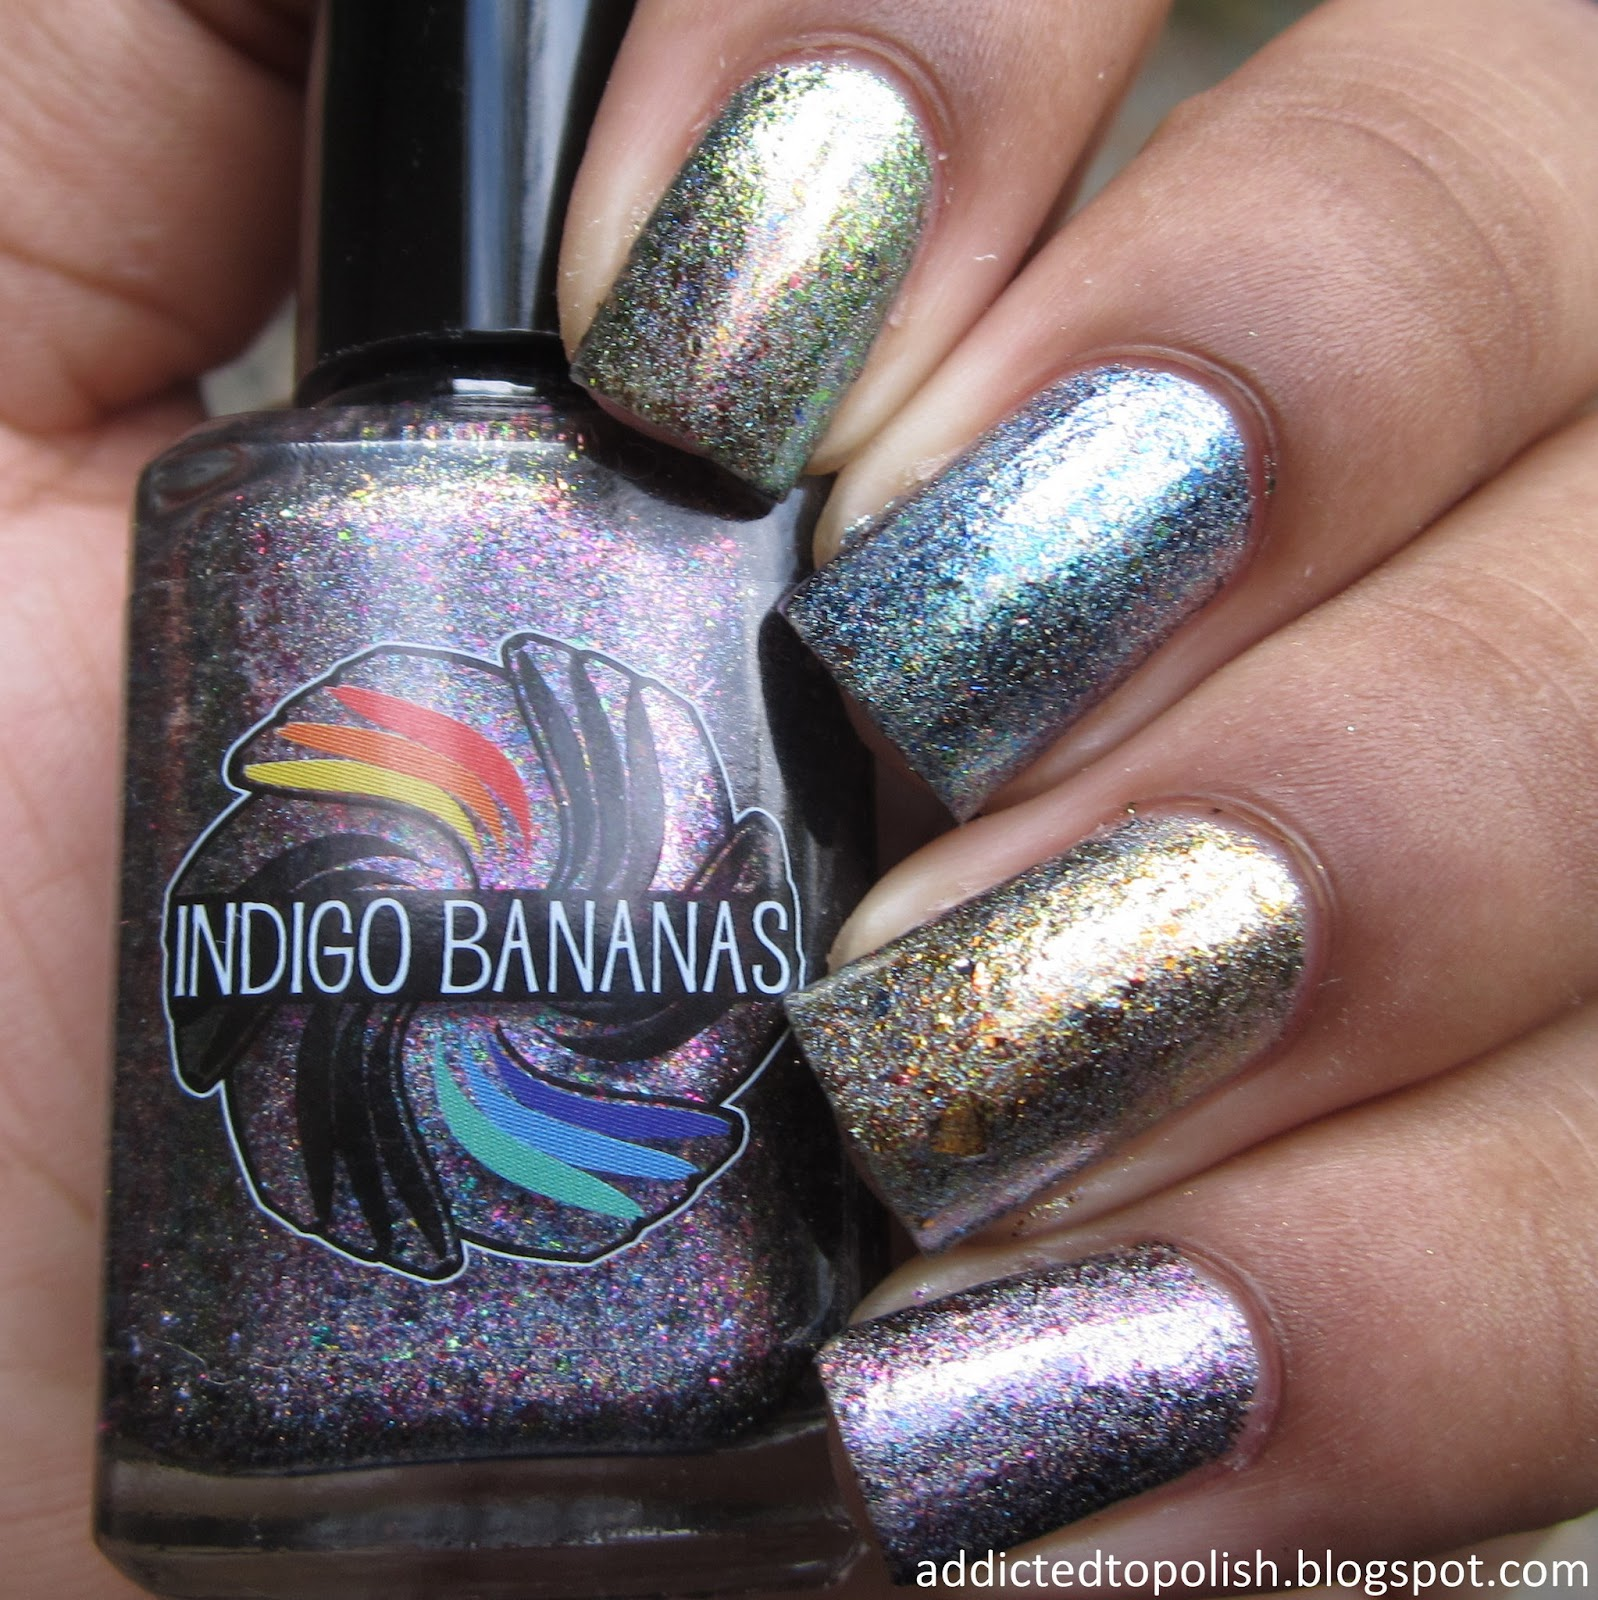 Indigo Bananas Holo Chrome Flakie Comparison